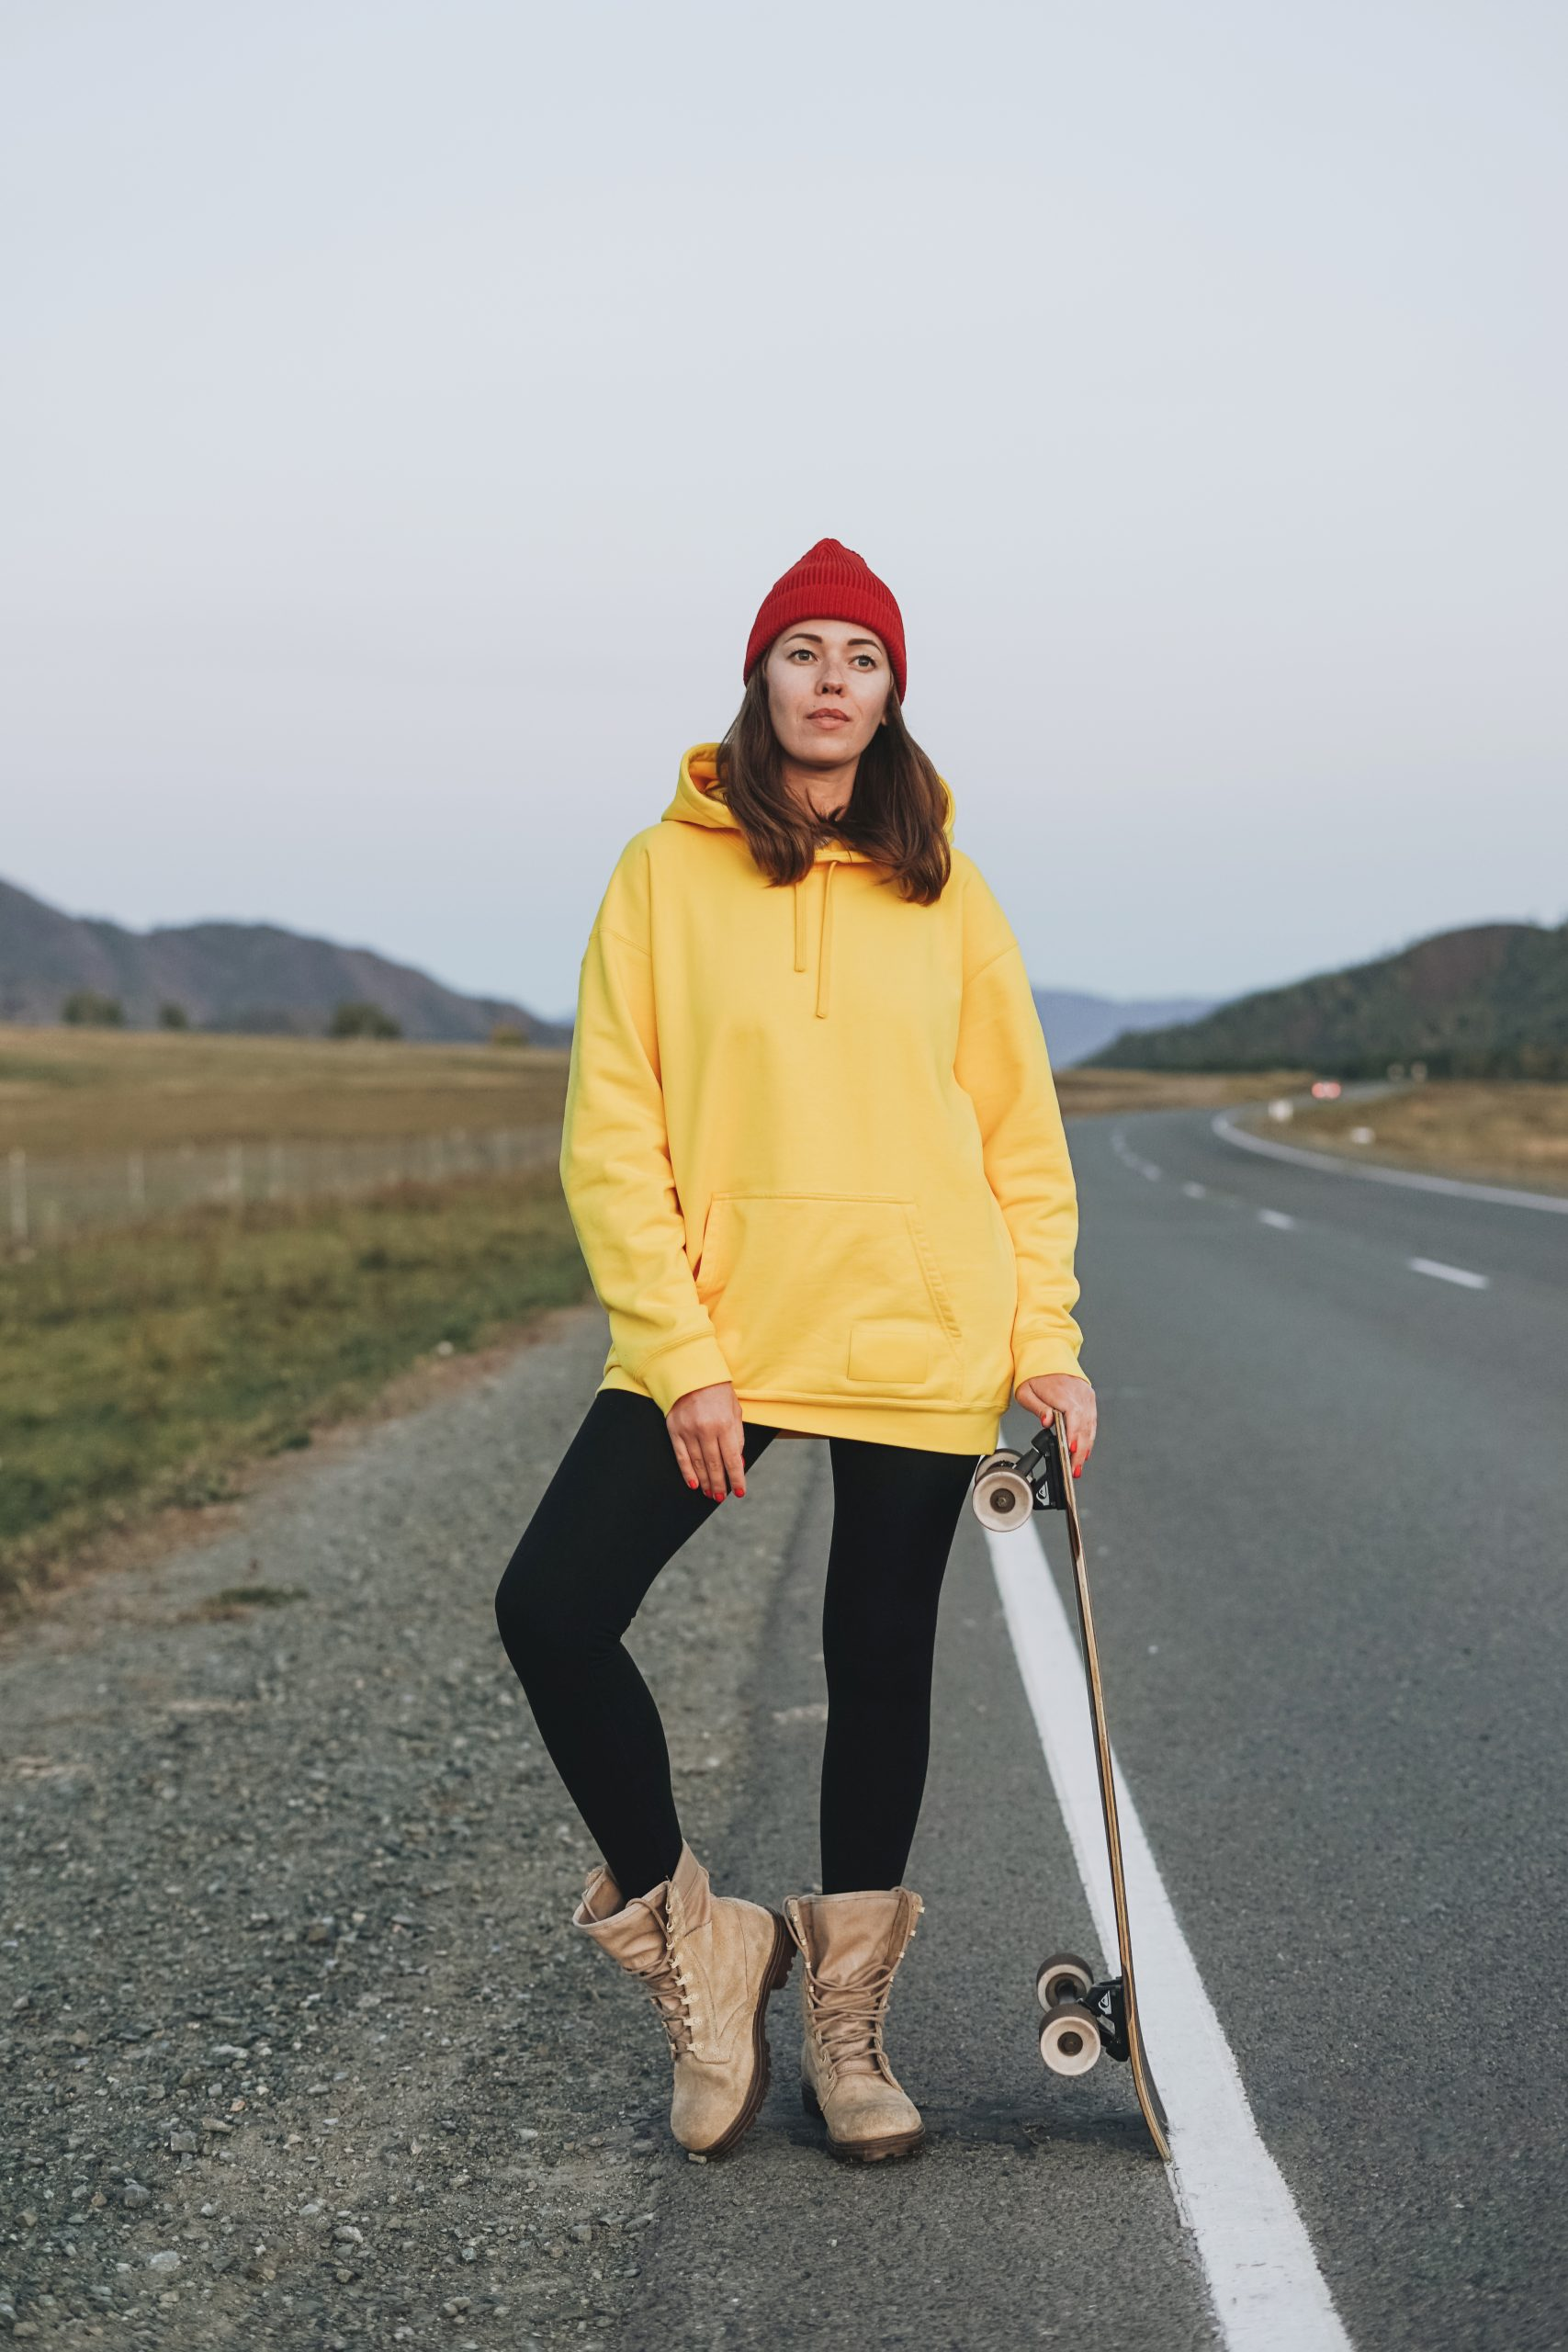 Young woman in yellow hoodie and red hat on skateboard on road against beautiful mountain landscape, Chuysky tract, Altai